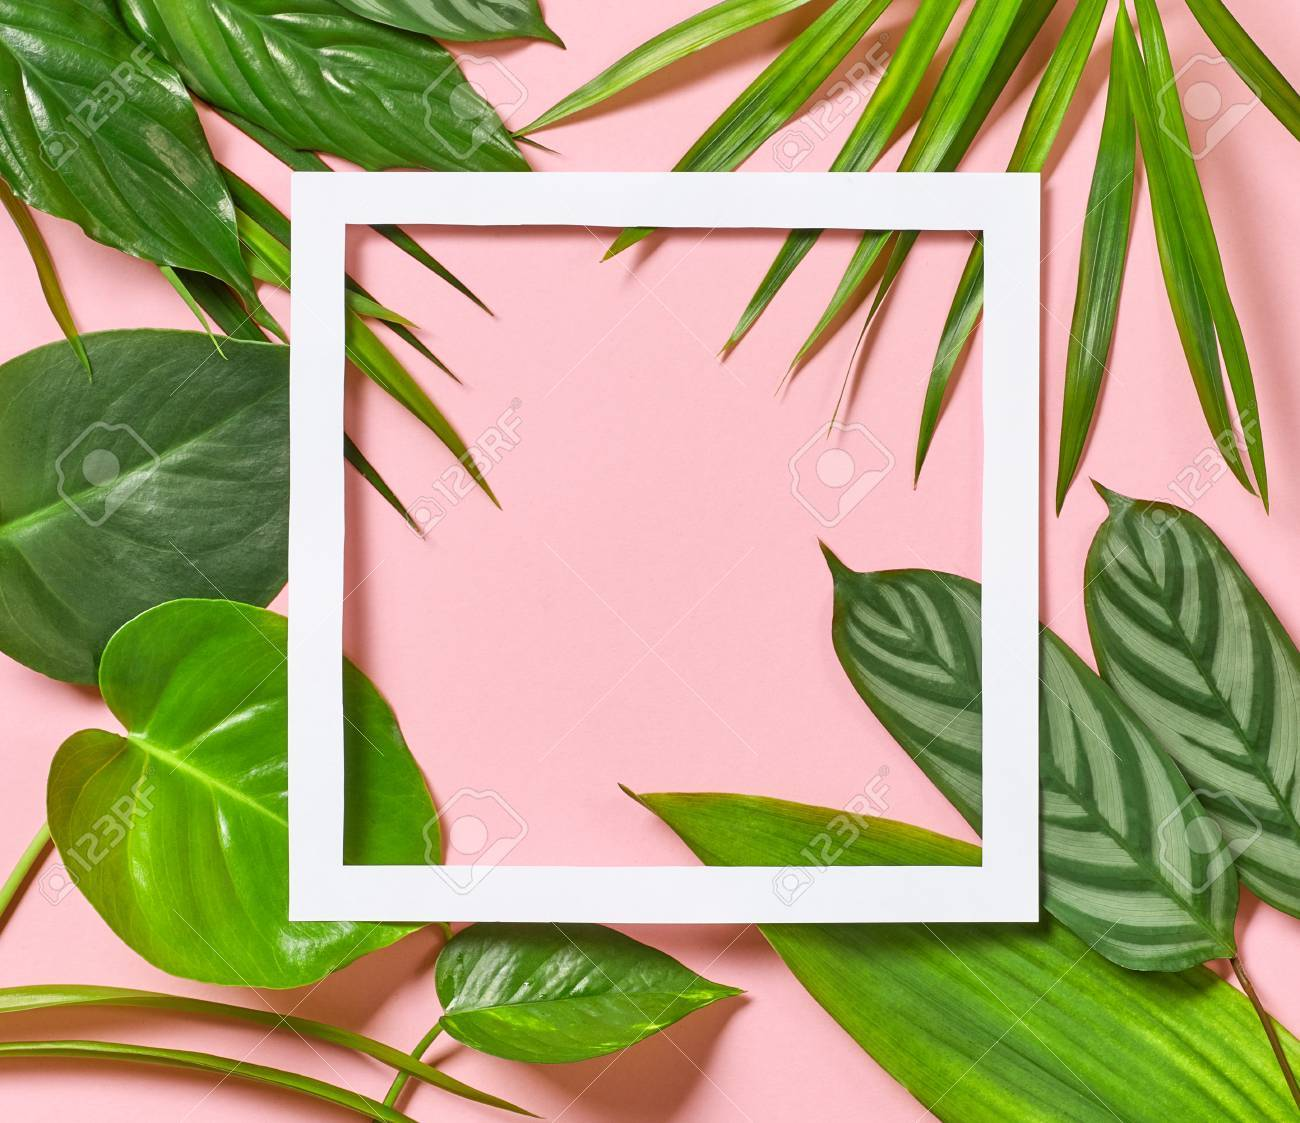 Tropical Leaves And White Frame On Pink Background Top View Stock Photo Picture And Royalty Free Image Image 89143586 How to credit on printed materials? tropical leaves and white frame on pink background top view